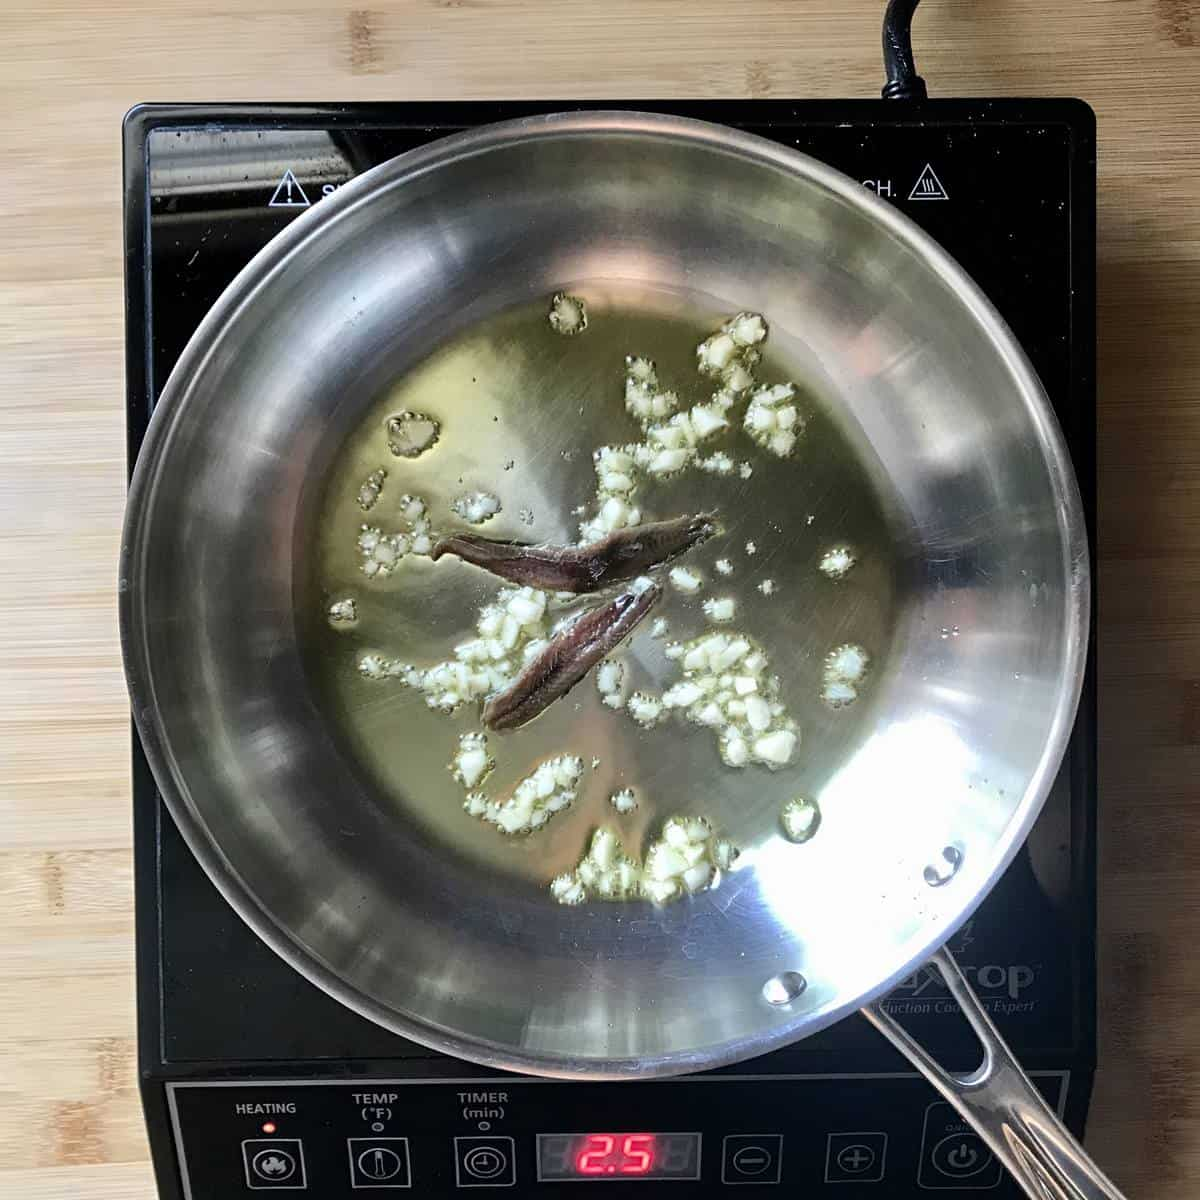 Sauteed garlic and anchovies in a pan.